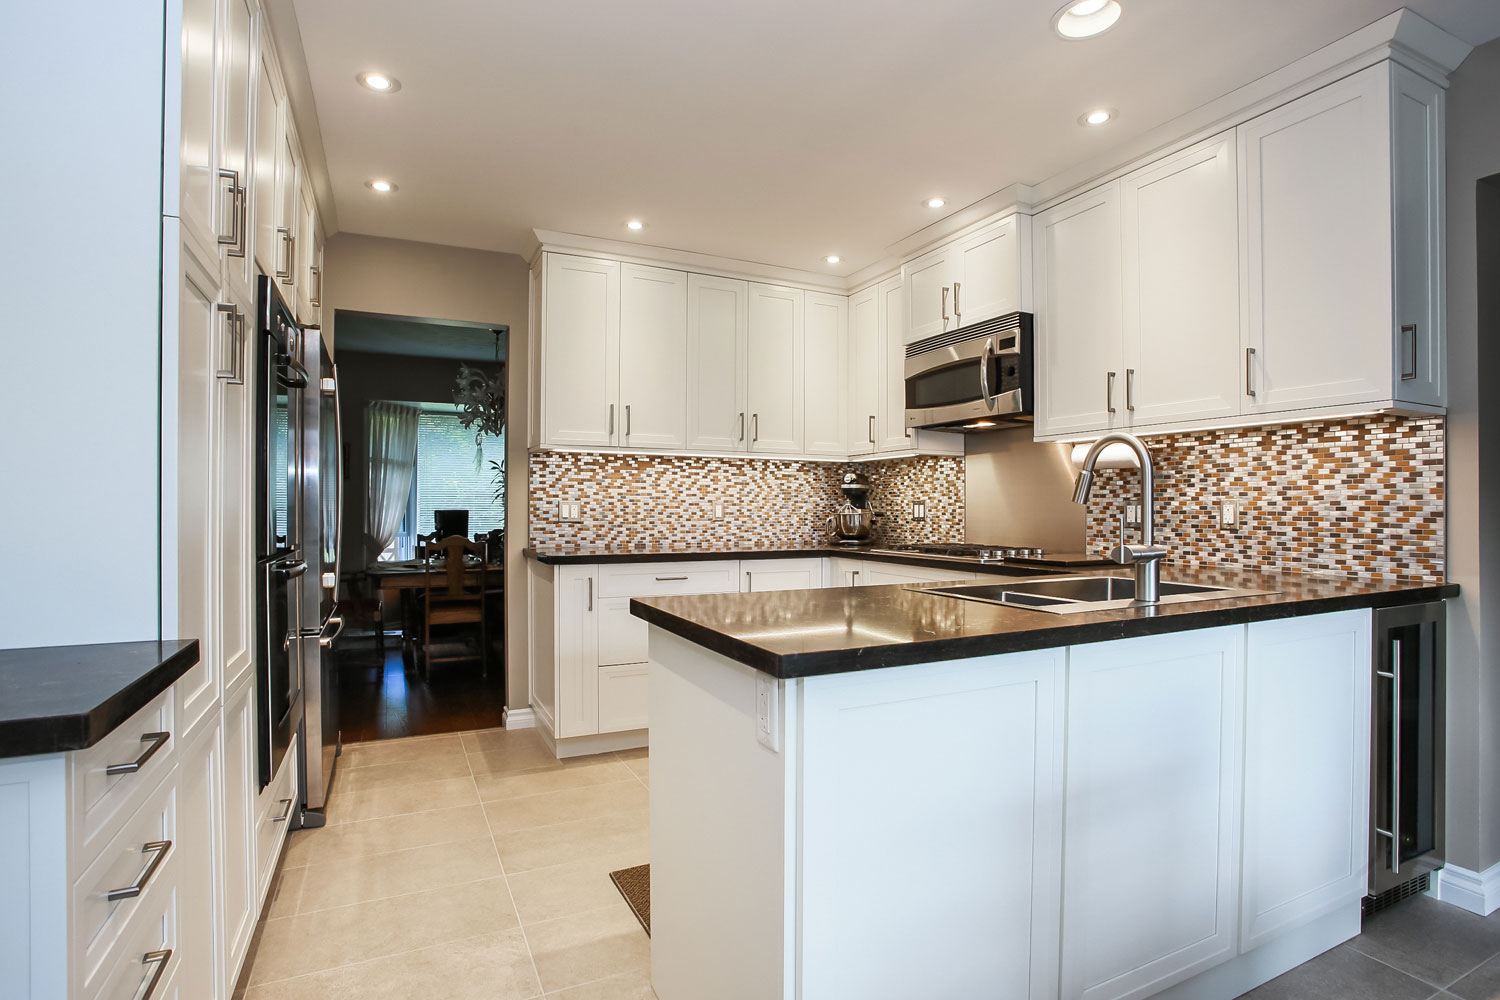 White Kitchen design with stainless steel appliances - Total Living Concepts barrie ontario